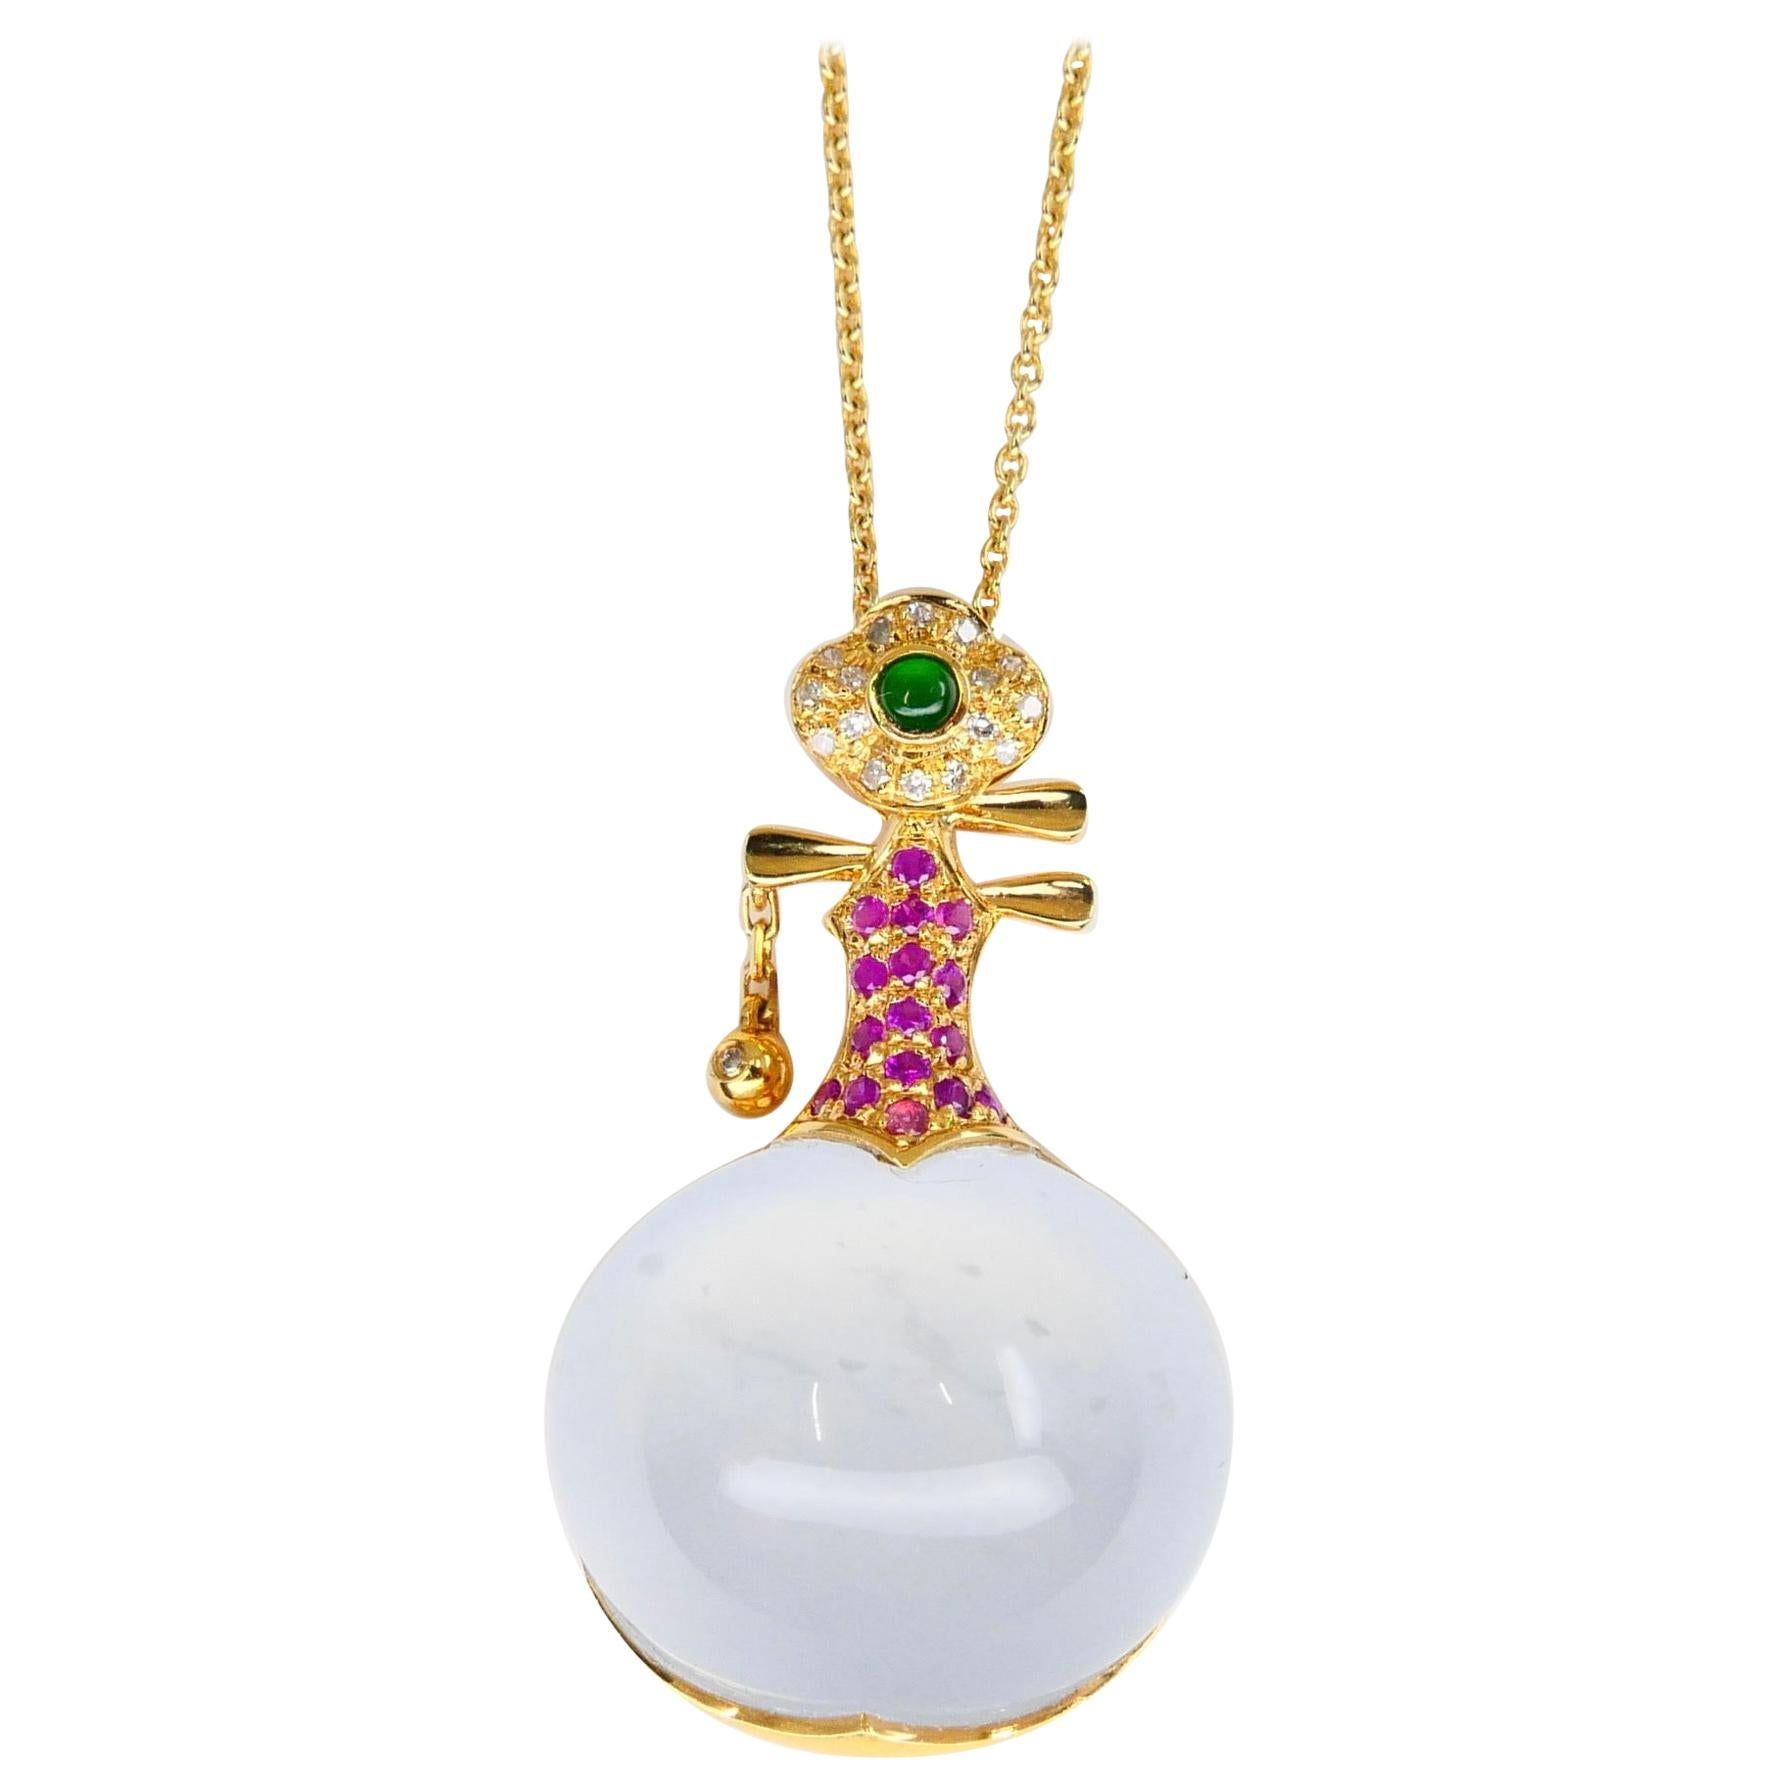 Certified Natural Icy & Imperial Jadeite Jade and Diamond Pendant, Musical Lute